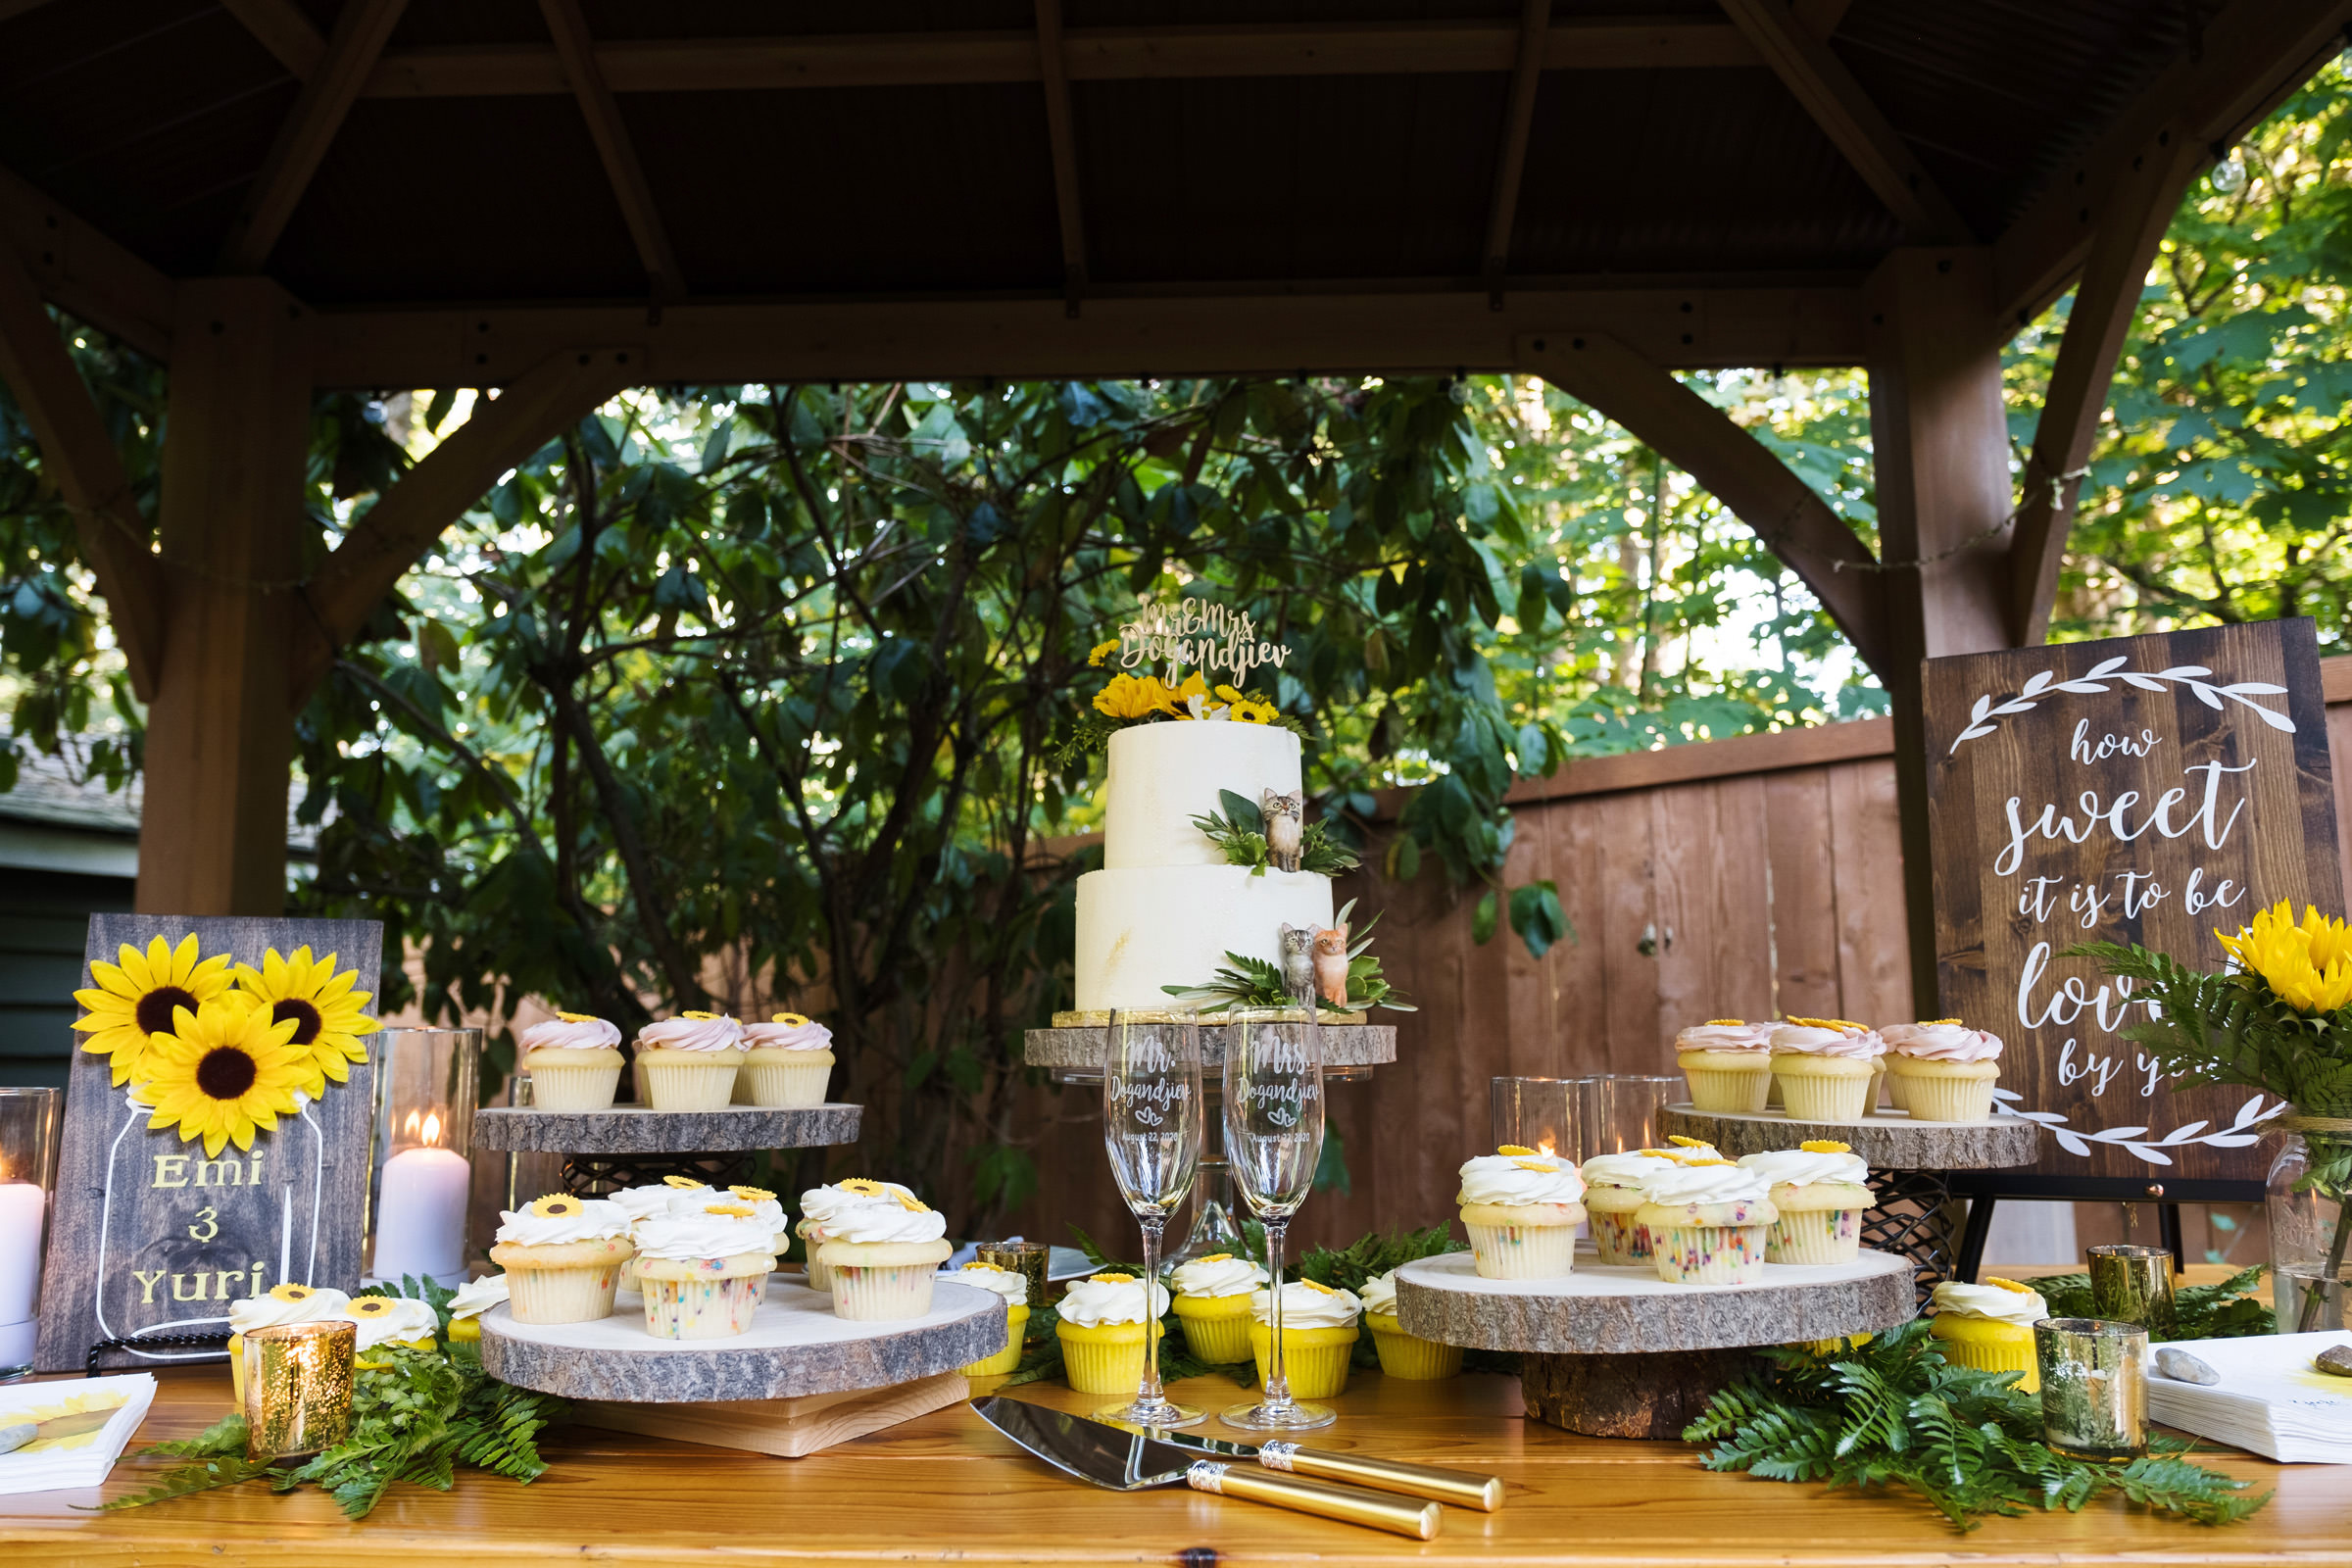 Dessert table with sunflower theme - photo by Barbie Hull Photography